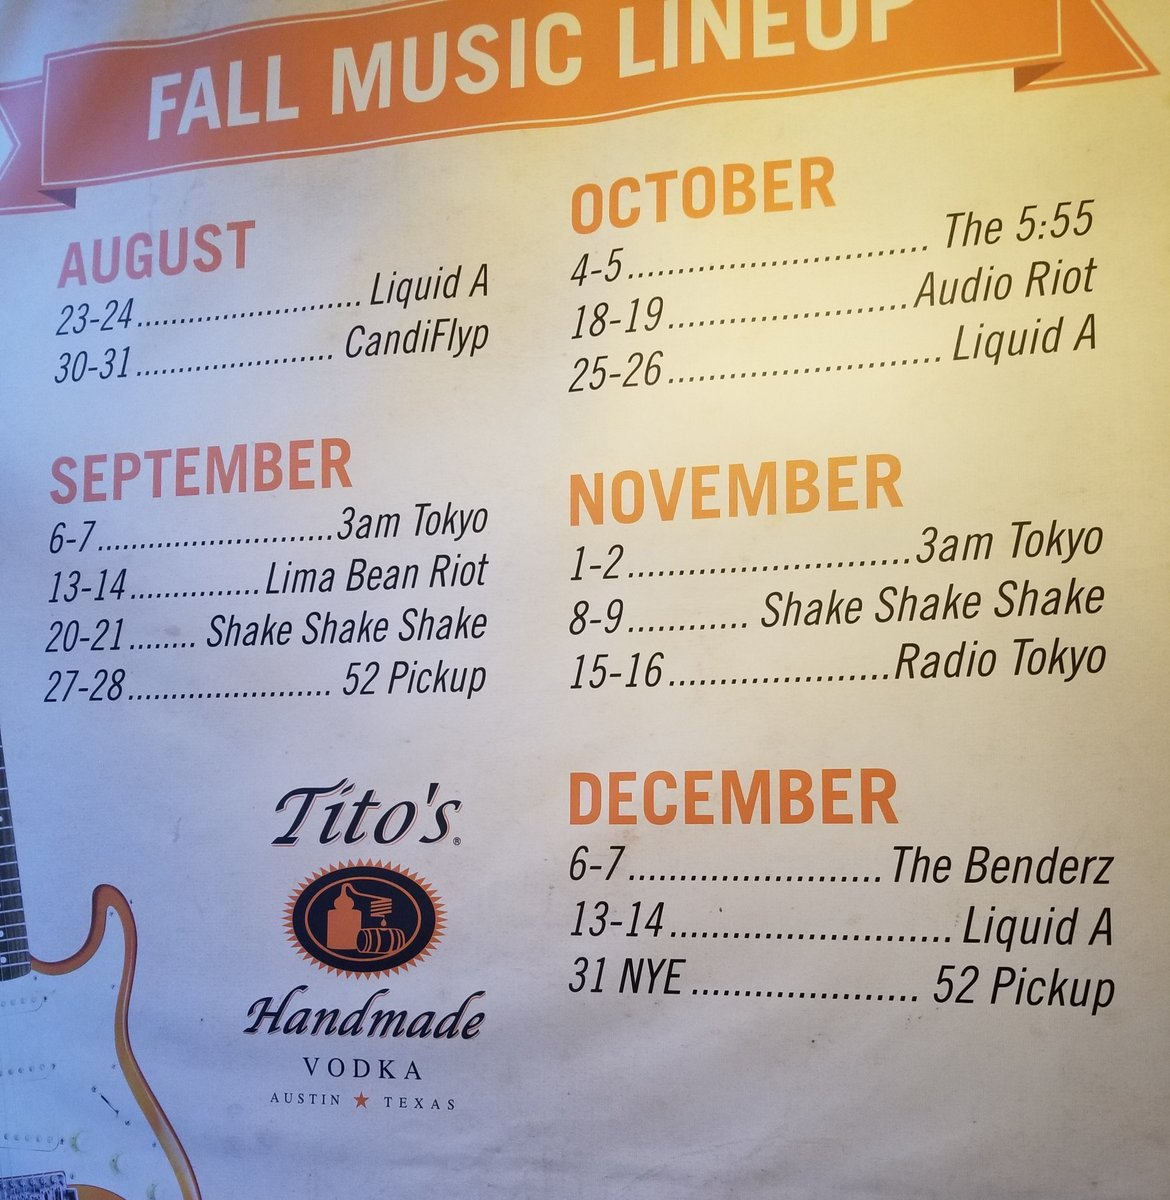 Our fall band schedule ft. @Liquidaband @3AMTokyo_ @radiotokyorocks @TheBenderzBand @Shake3xMusic @limabeanriot @Candiflyp #AudioRiot #52Pickup #5:55Band. Follow and RT for a chance at VIP passes for you and a guest the entire semester. Winner(s) picked Friday August 23rd at 8pm<br>http://pic.twitter.com/TCZMXjWNTR